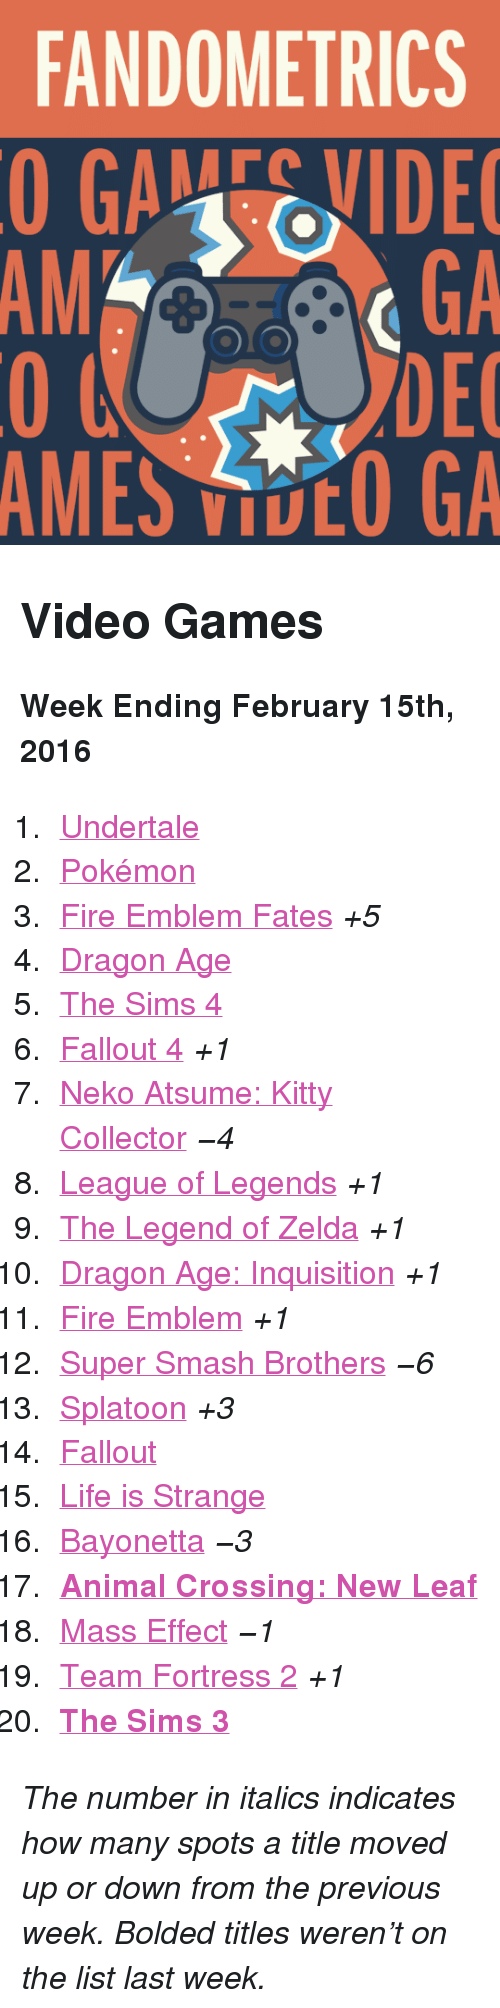 "Bayonetta: FANDOMETRICS  GAEVIDE  GA  DEC  AMES VOO GA  AM <h2>Video Games</h2><p><b>Week Ending February 15th, 2016</b></p><ol><li><a href=""http://www.tumblr.com/search/undertale"">Undertale</a></li>  <li><a href=""http://www.tumblr.com/search/pokemon"">Pokémon</a></li>  <li><a href=""http://www.tumblr.com/search/fire%20emblem%20fates"">Fire Emblem Fates</a> <i>+5</i><br/></li>  <li><a href=""http://www.tumblr.com/search/dragon%20age"">Dragon Age</a></li>  <li><a href=""http://www.tumblr.com/search/sims%204"">The Sims 4</a></li>  <li><a href=""http://www.tumblr.com/search/fallout%204"">Fallout 4</a> <i>+1</i></li>  <li><a href=""http://www.tumblr.com/search/neko%20atsume"">Neko Atsume: Kitty Collector</a> <i>−4</i></li>  <li><a href=""http://www.tumblr.com/search/league%20of%20legends"">League of Legends</a> <i>+1</i></li>  <li><a href=""http://www.tumblr.com/search/legend%20of%20zelda"">The Legend of Zelda</a> <i>+1</i></li>  <li><a href=""http://www.tumblr.com/search/dragon%20age%20inquisition"">Dragon Age: Inquisition</a> <i>+1</i></li>  <li><a href=""http://www.tumblr.com/search/fire%20emblem"">Fire Emblem</a> <i>+1</i></li>  <li><a href=""http://www.tumblr.com/search/super%20smash%20bros"">Super Smash Brothers</a> <i>−6</i></li>  <li><a href=""http://www.tumblr.com/search/splatoon"">Splatoon</a> <i>+3</i></li>  <li><a href=""http://www.tumblr.com/search/fallout"">Fallout</a> </li>  <li><a href=""http://www.tumblr.com/search/life%20is%20strange"">Life is Strange</a></li>  <li><a href=""http://www.tumblr.com/search/bayonetta"">Bayonetta</a> <i>−3</i></li>  <li><a href=""http://www.tumblr.com/search/acnl""><b>Animal Crossing: New Leaf</b></a></li>  <li><a href=""http://www.tumblr.com/search/mass%20effect"">Mass Effect</a> <i>−1</i></li>  <li><a href=""http://www.tumblr.com/search/tf2"">Team Fortress 2</a> <i>+1</i></li>  <li><a href=""http://www.tumblr.com/search/sims%203""><b>The Sims 3</b></a></li></ol><p><i>The number in italics indicates how many spots a title moved up or down from the previous week. Bolded titles weren't on the list last week.</i></p>"